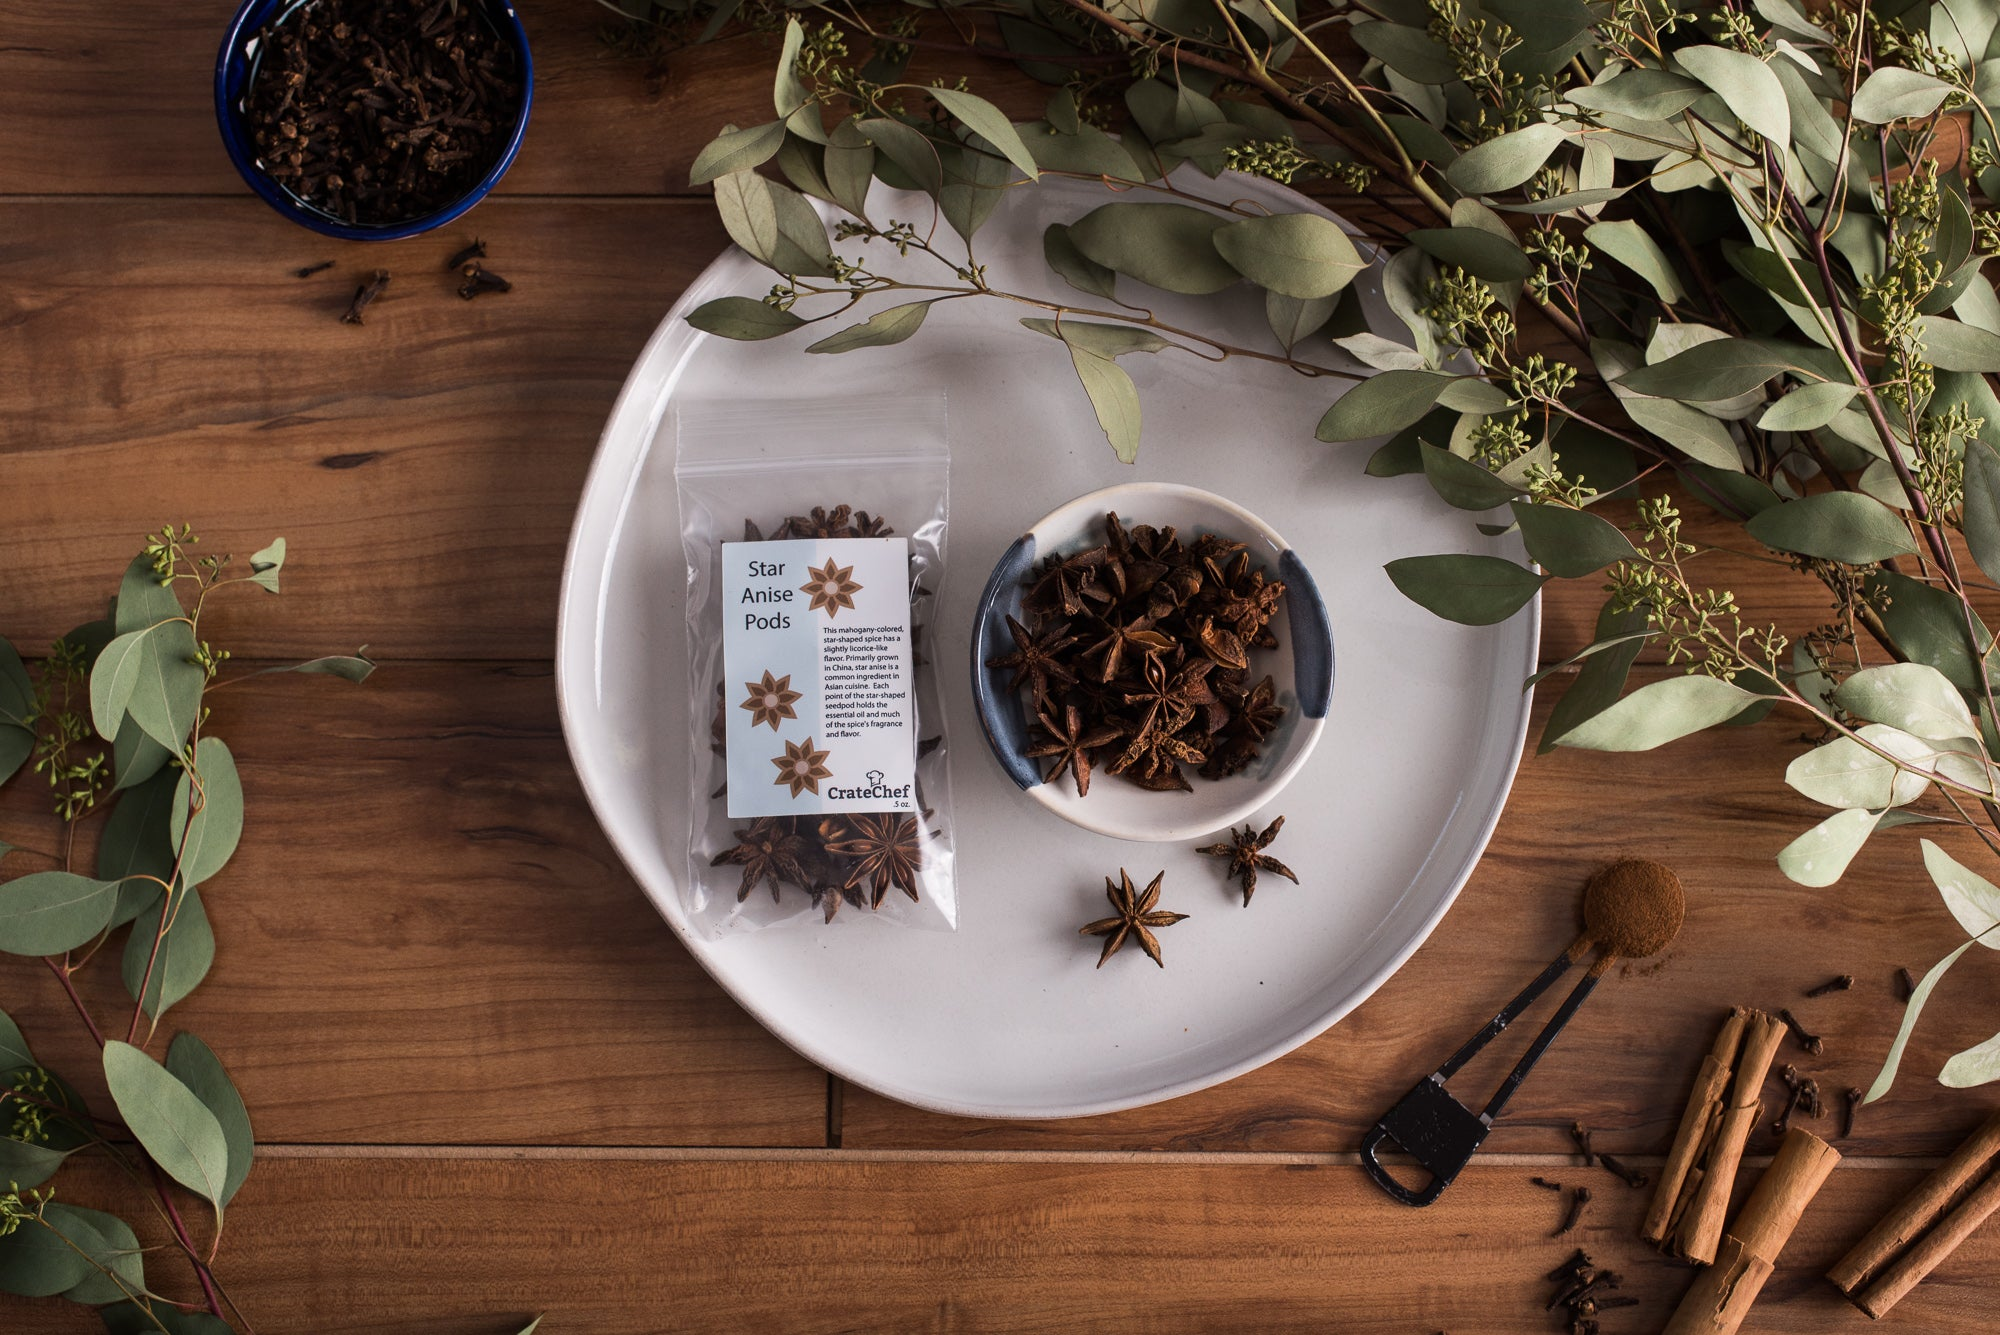 <a target='_blank' href='https://amzn.to/2Hbsrrh'>Star Anise Pods</a>